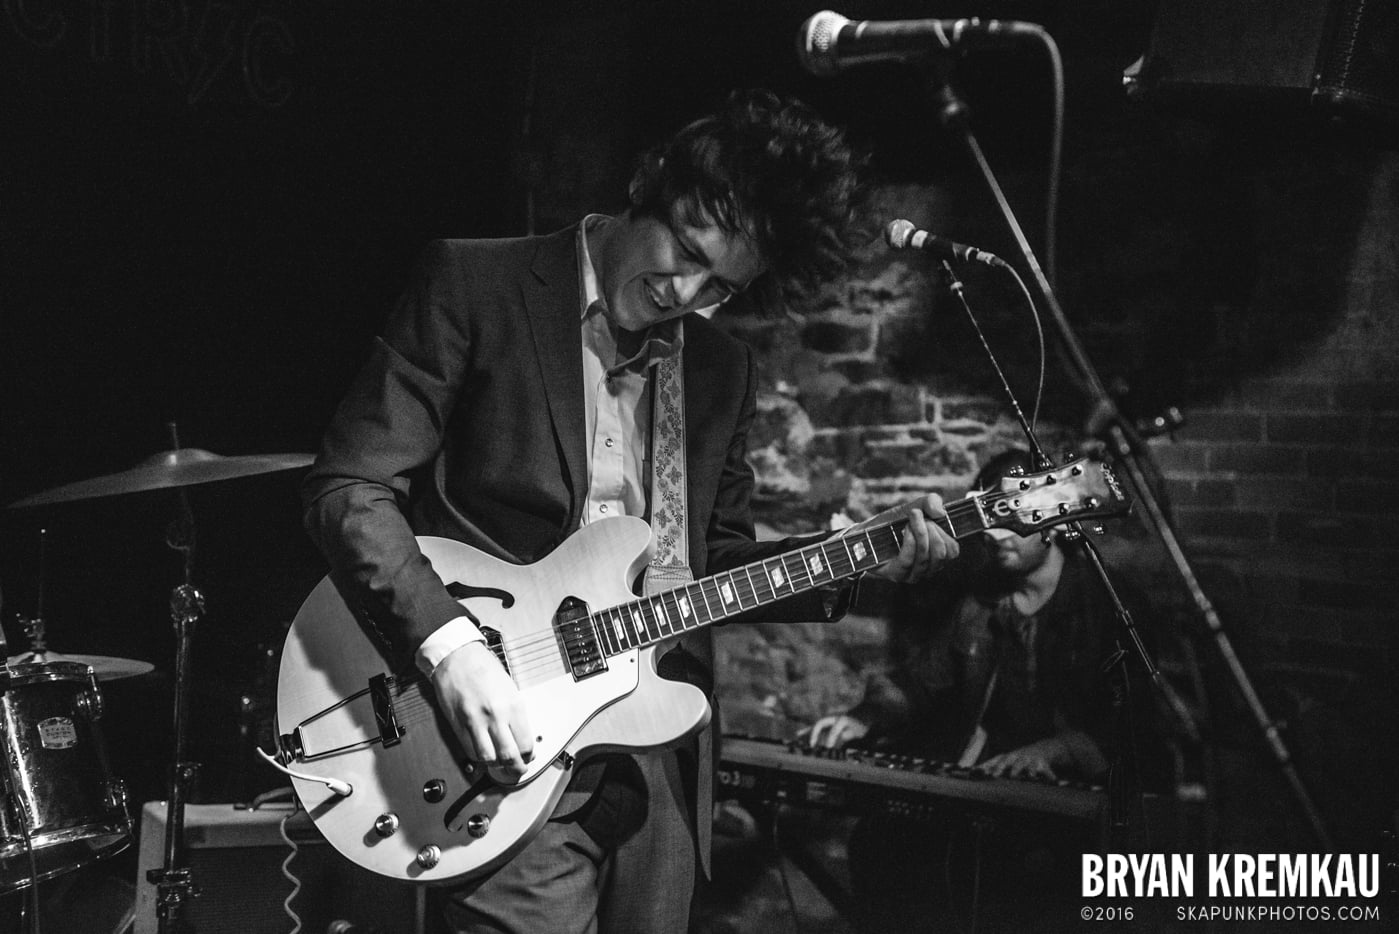 Trapper Schoepp & The Shades @ Bowery Electric, NYC - 11.20.14 (13)